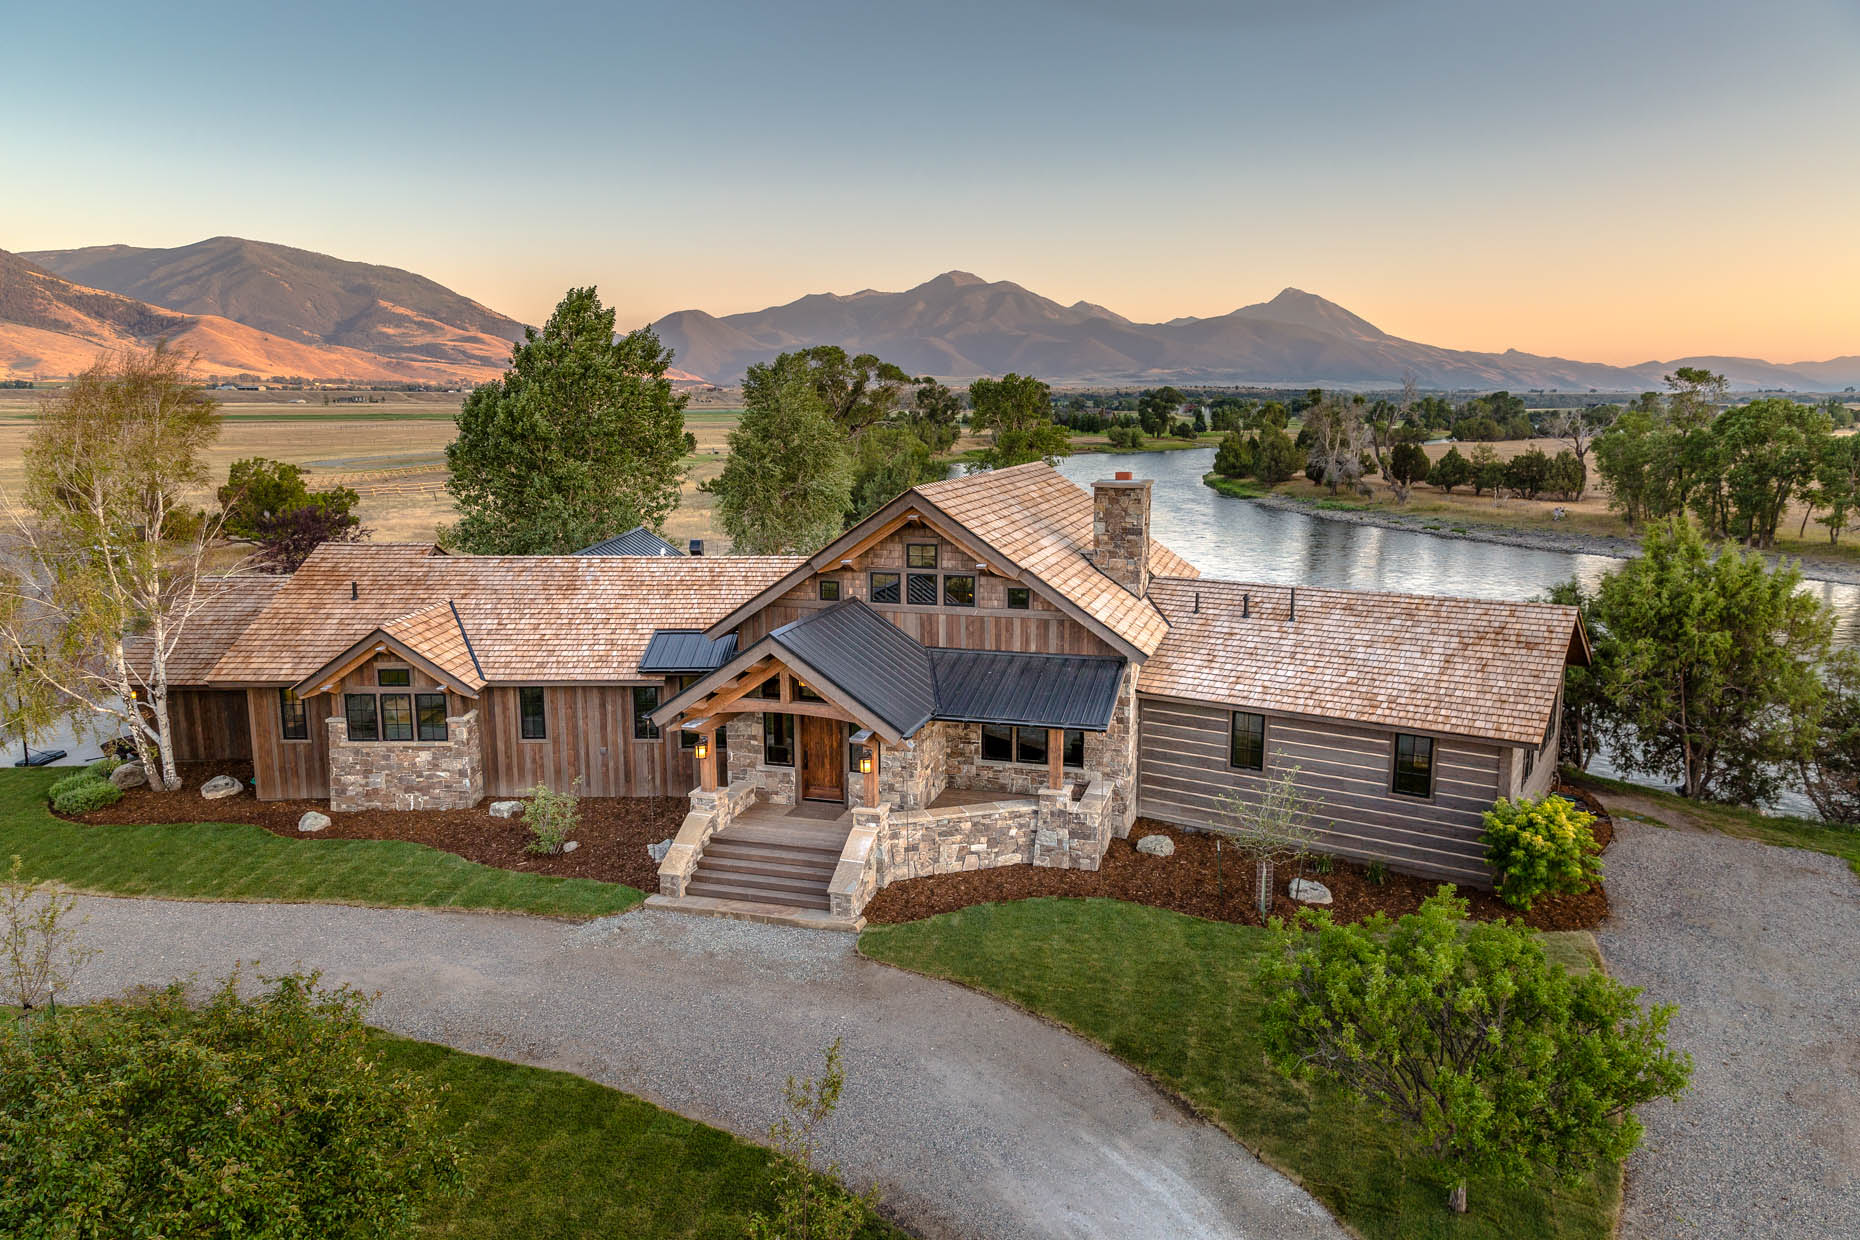 architecture Fishcamp Customs exterior paradise valley Yellowstone River